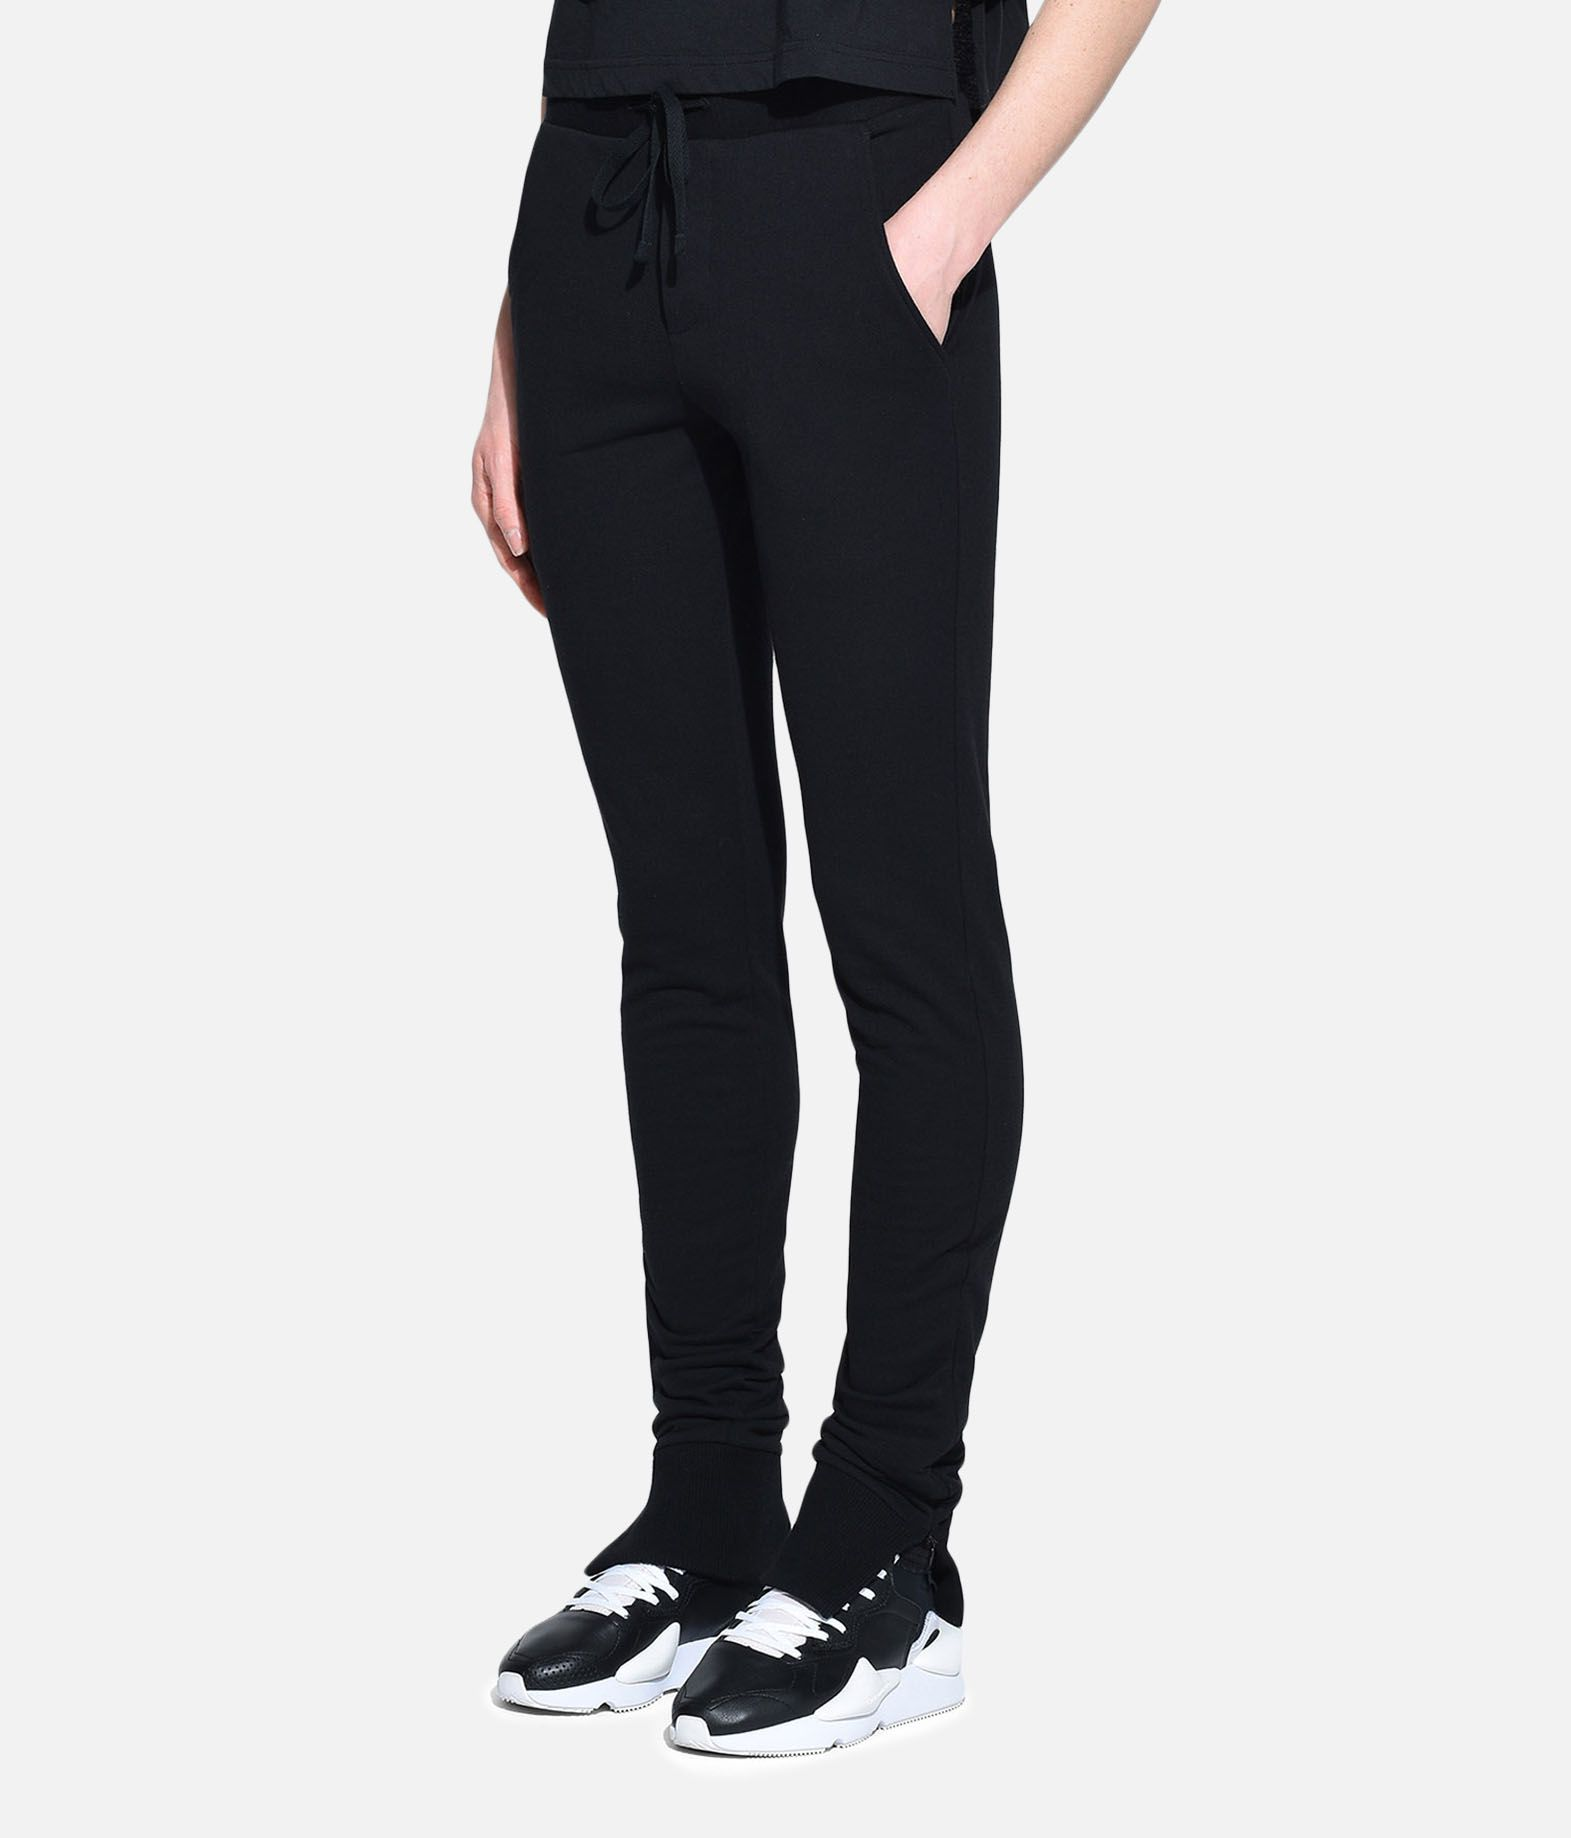 Y-3 Y-3 Fleece Slim Pants Casual pants Woman d